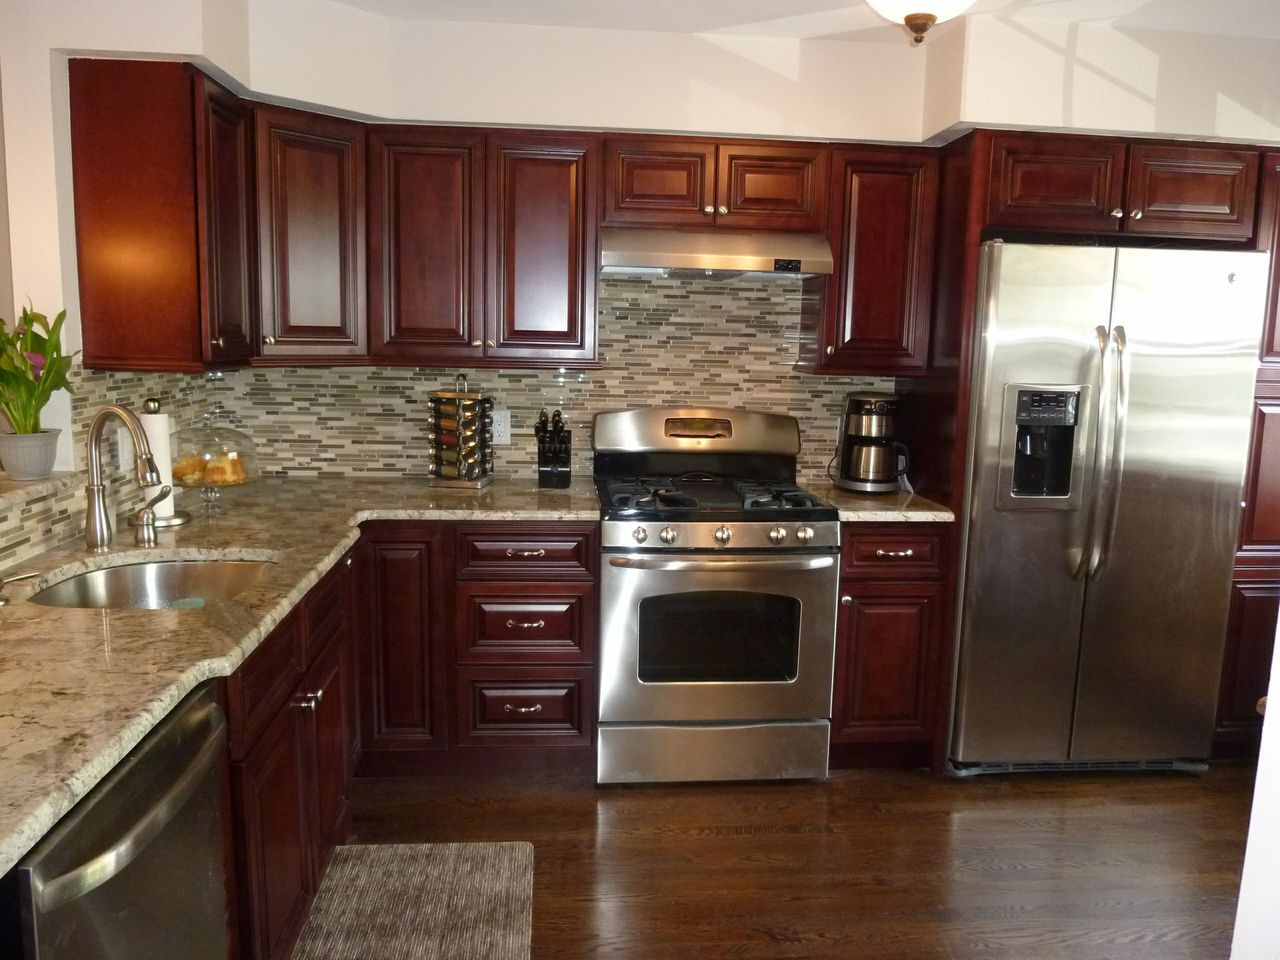 modern kitchen, stainless steel appliances, granite ...